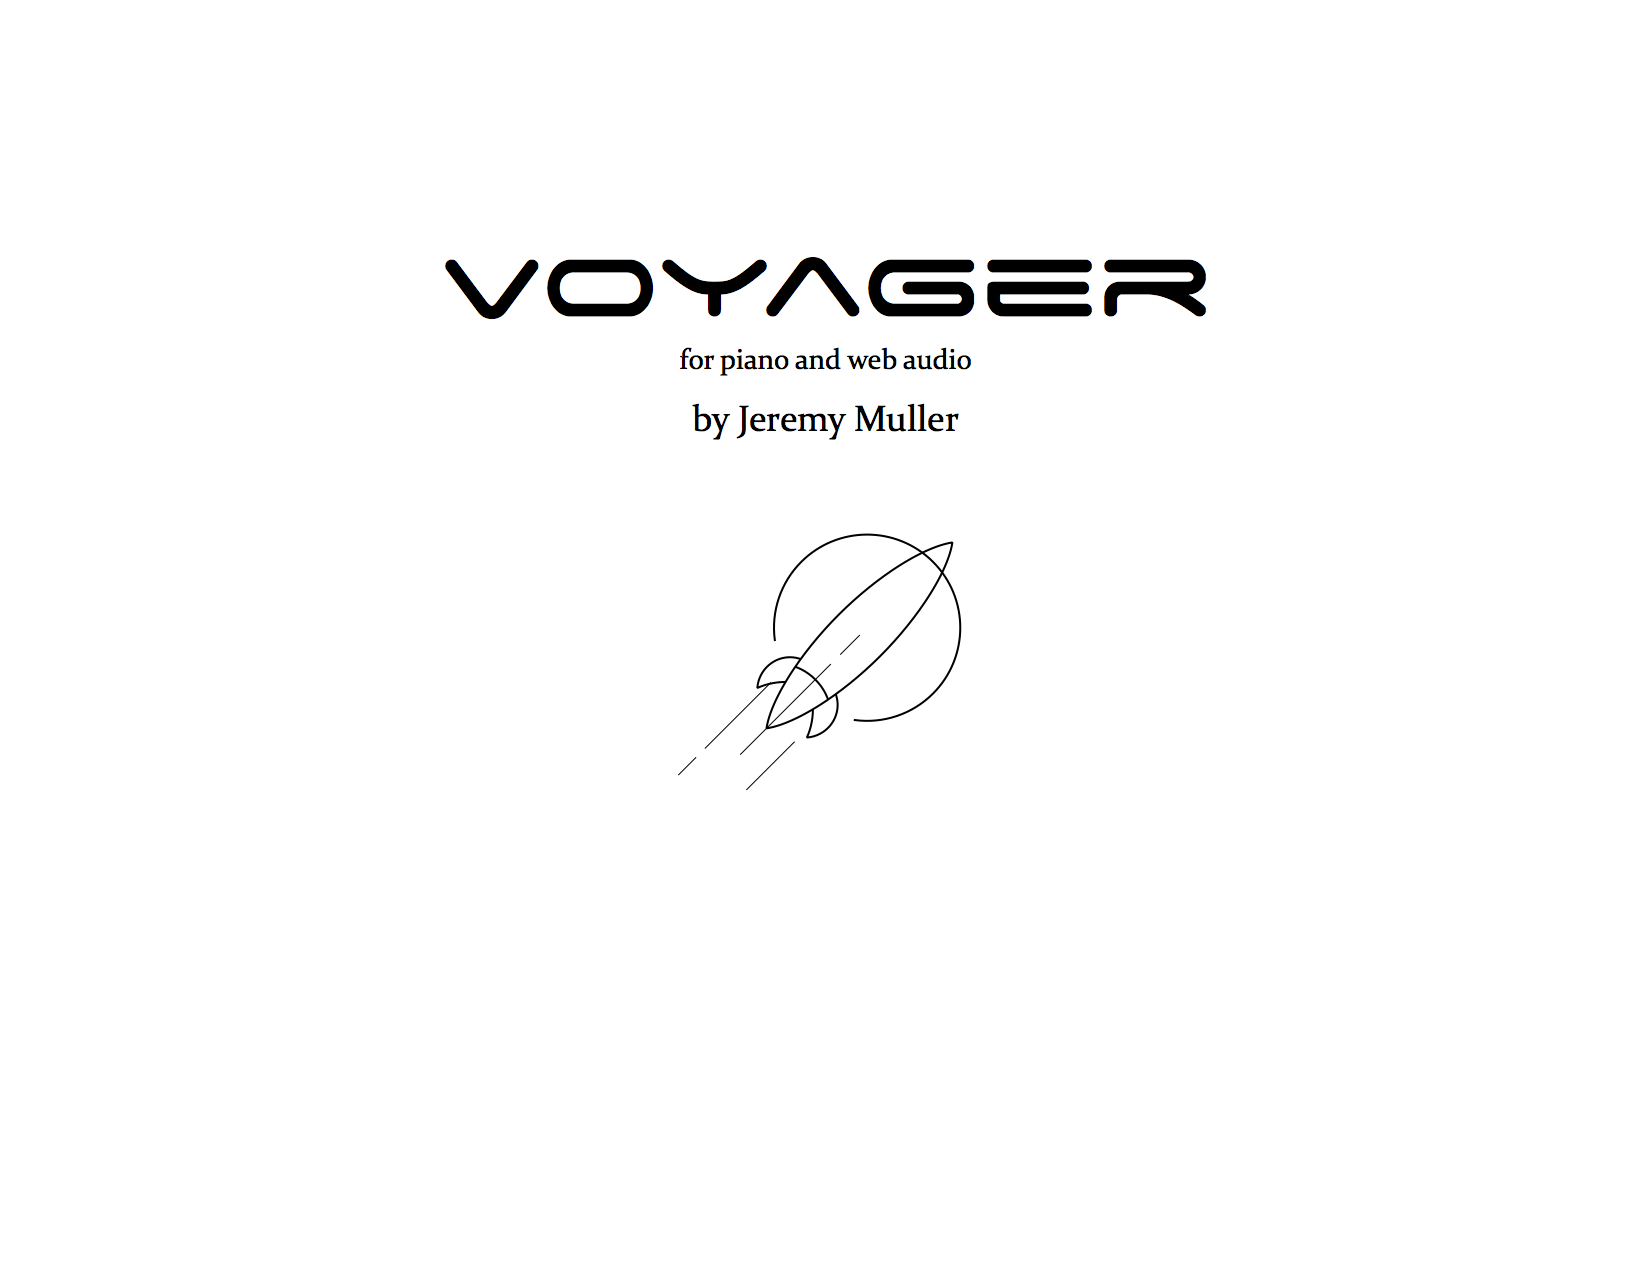 Compositions jeremy muller voyager 2017 for piano and web audio premiered by karl schindler at the phoenix experimental arts festival this work is based on the nasa voyager biocorpaavc Gallery